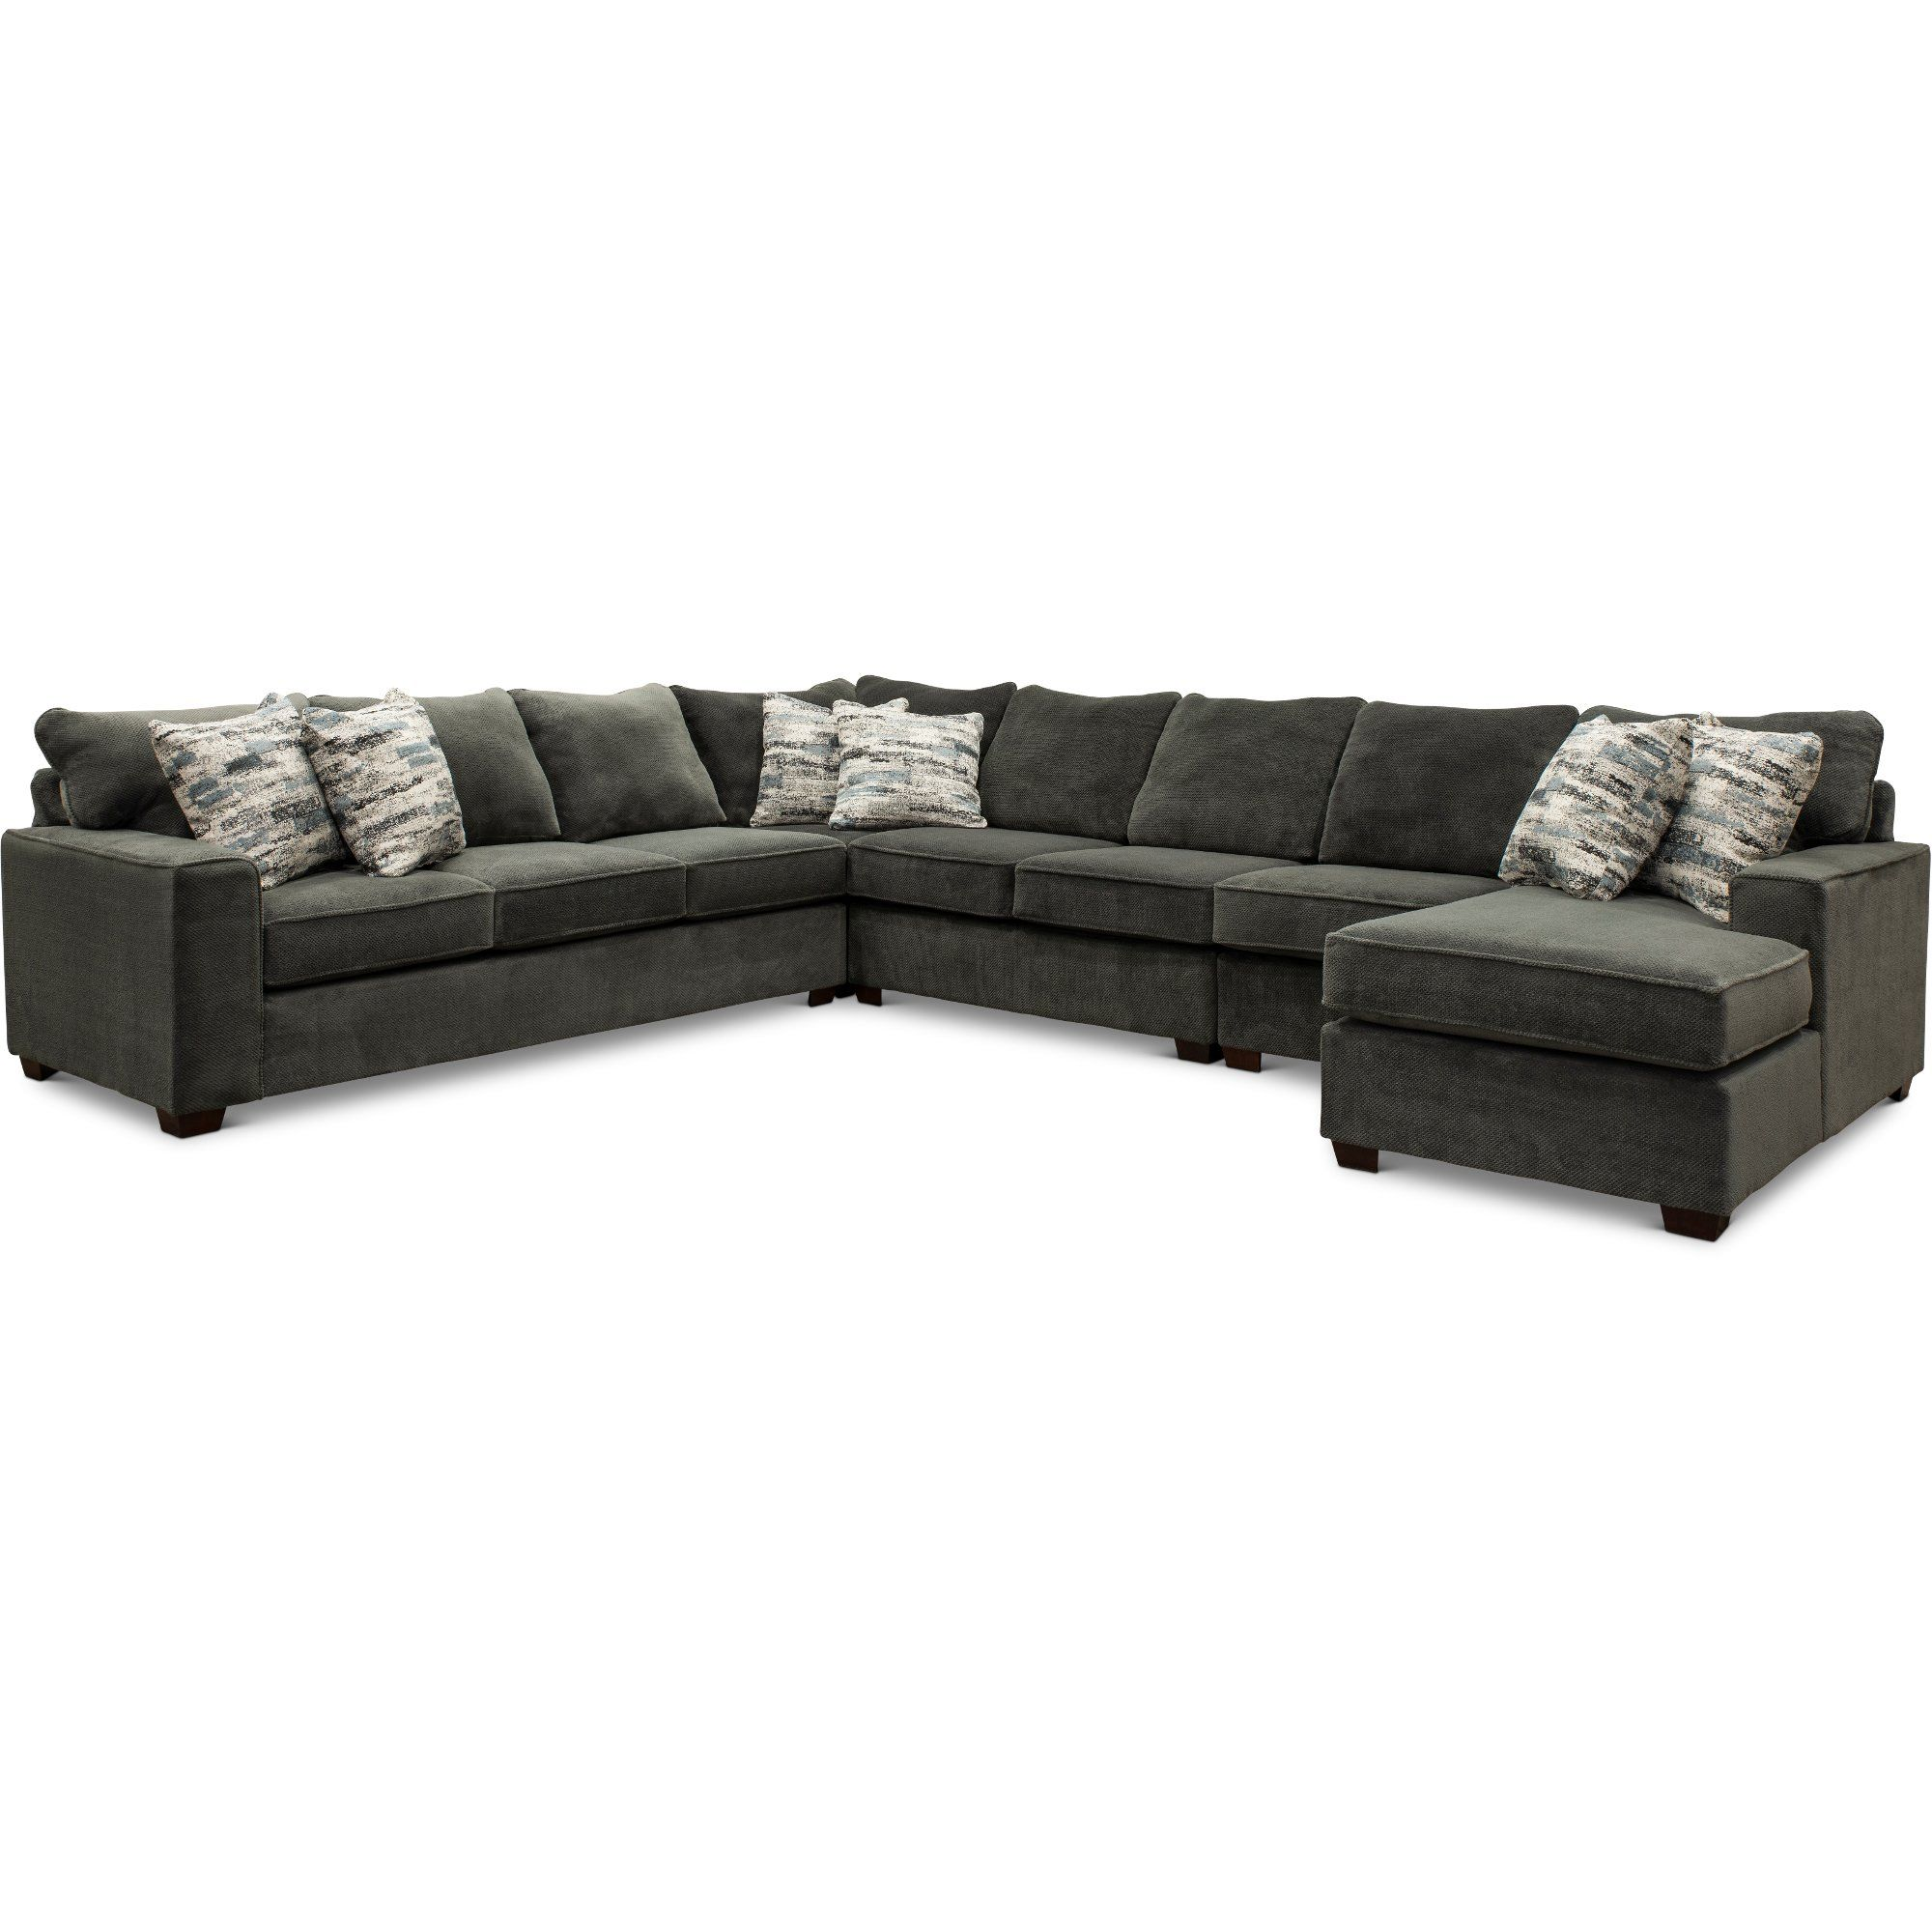 Dark Gray 5 Piece Sectional Sofa With Laf Sofa Autumn